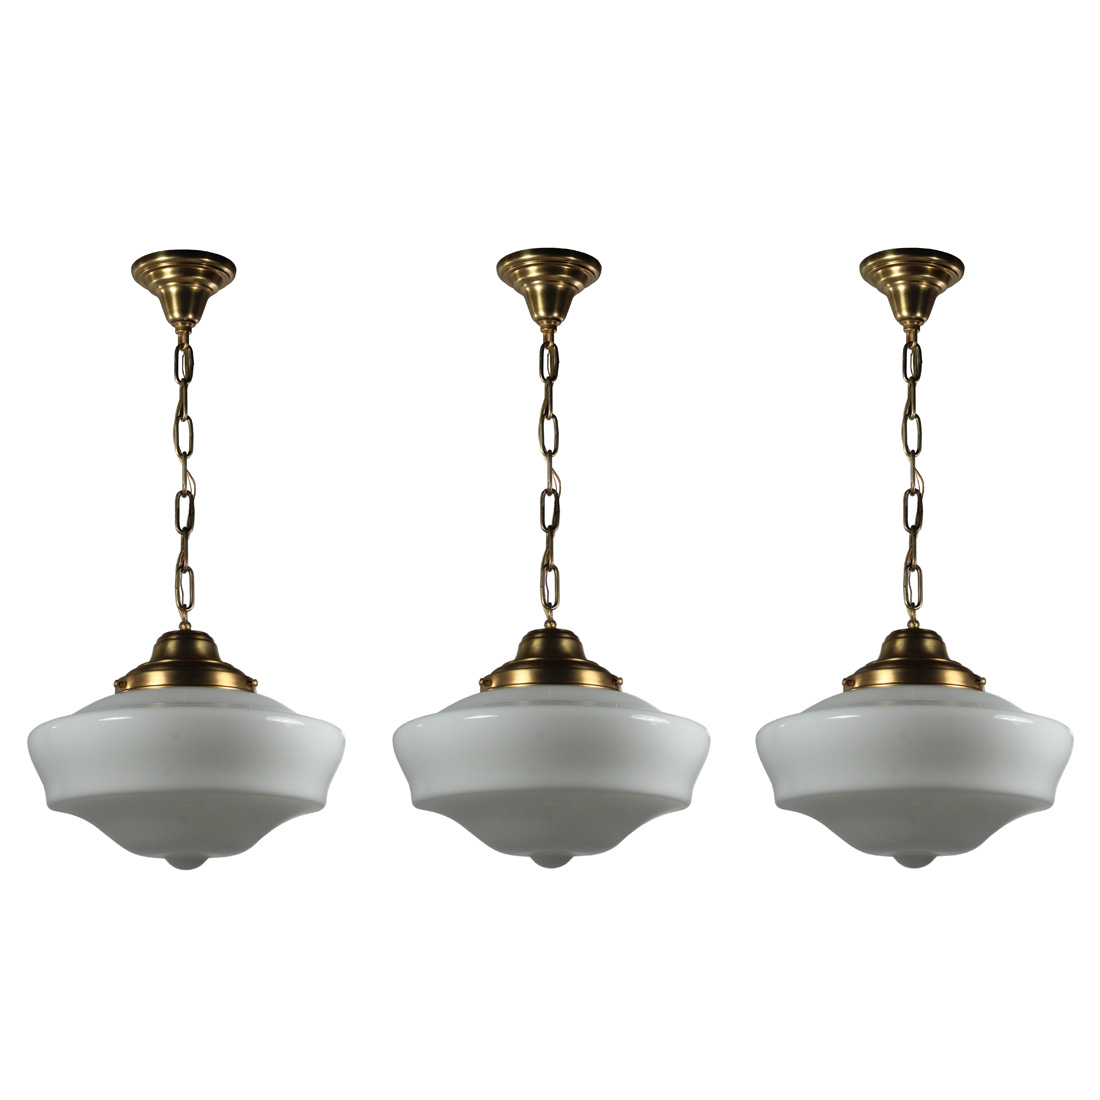 Matching Brass Schoolhouse Pendant Lights Antique Lighting Antique Lighting Ceiling Lighting Pair Multiple Chandeliers Pendant Lighting Recent Arrivals The Preservation Station